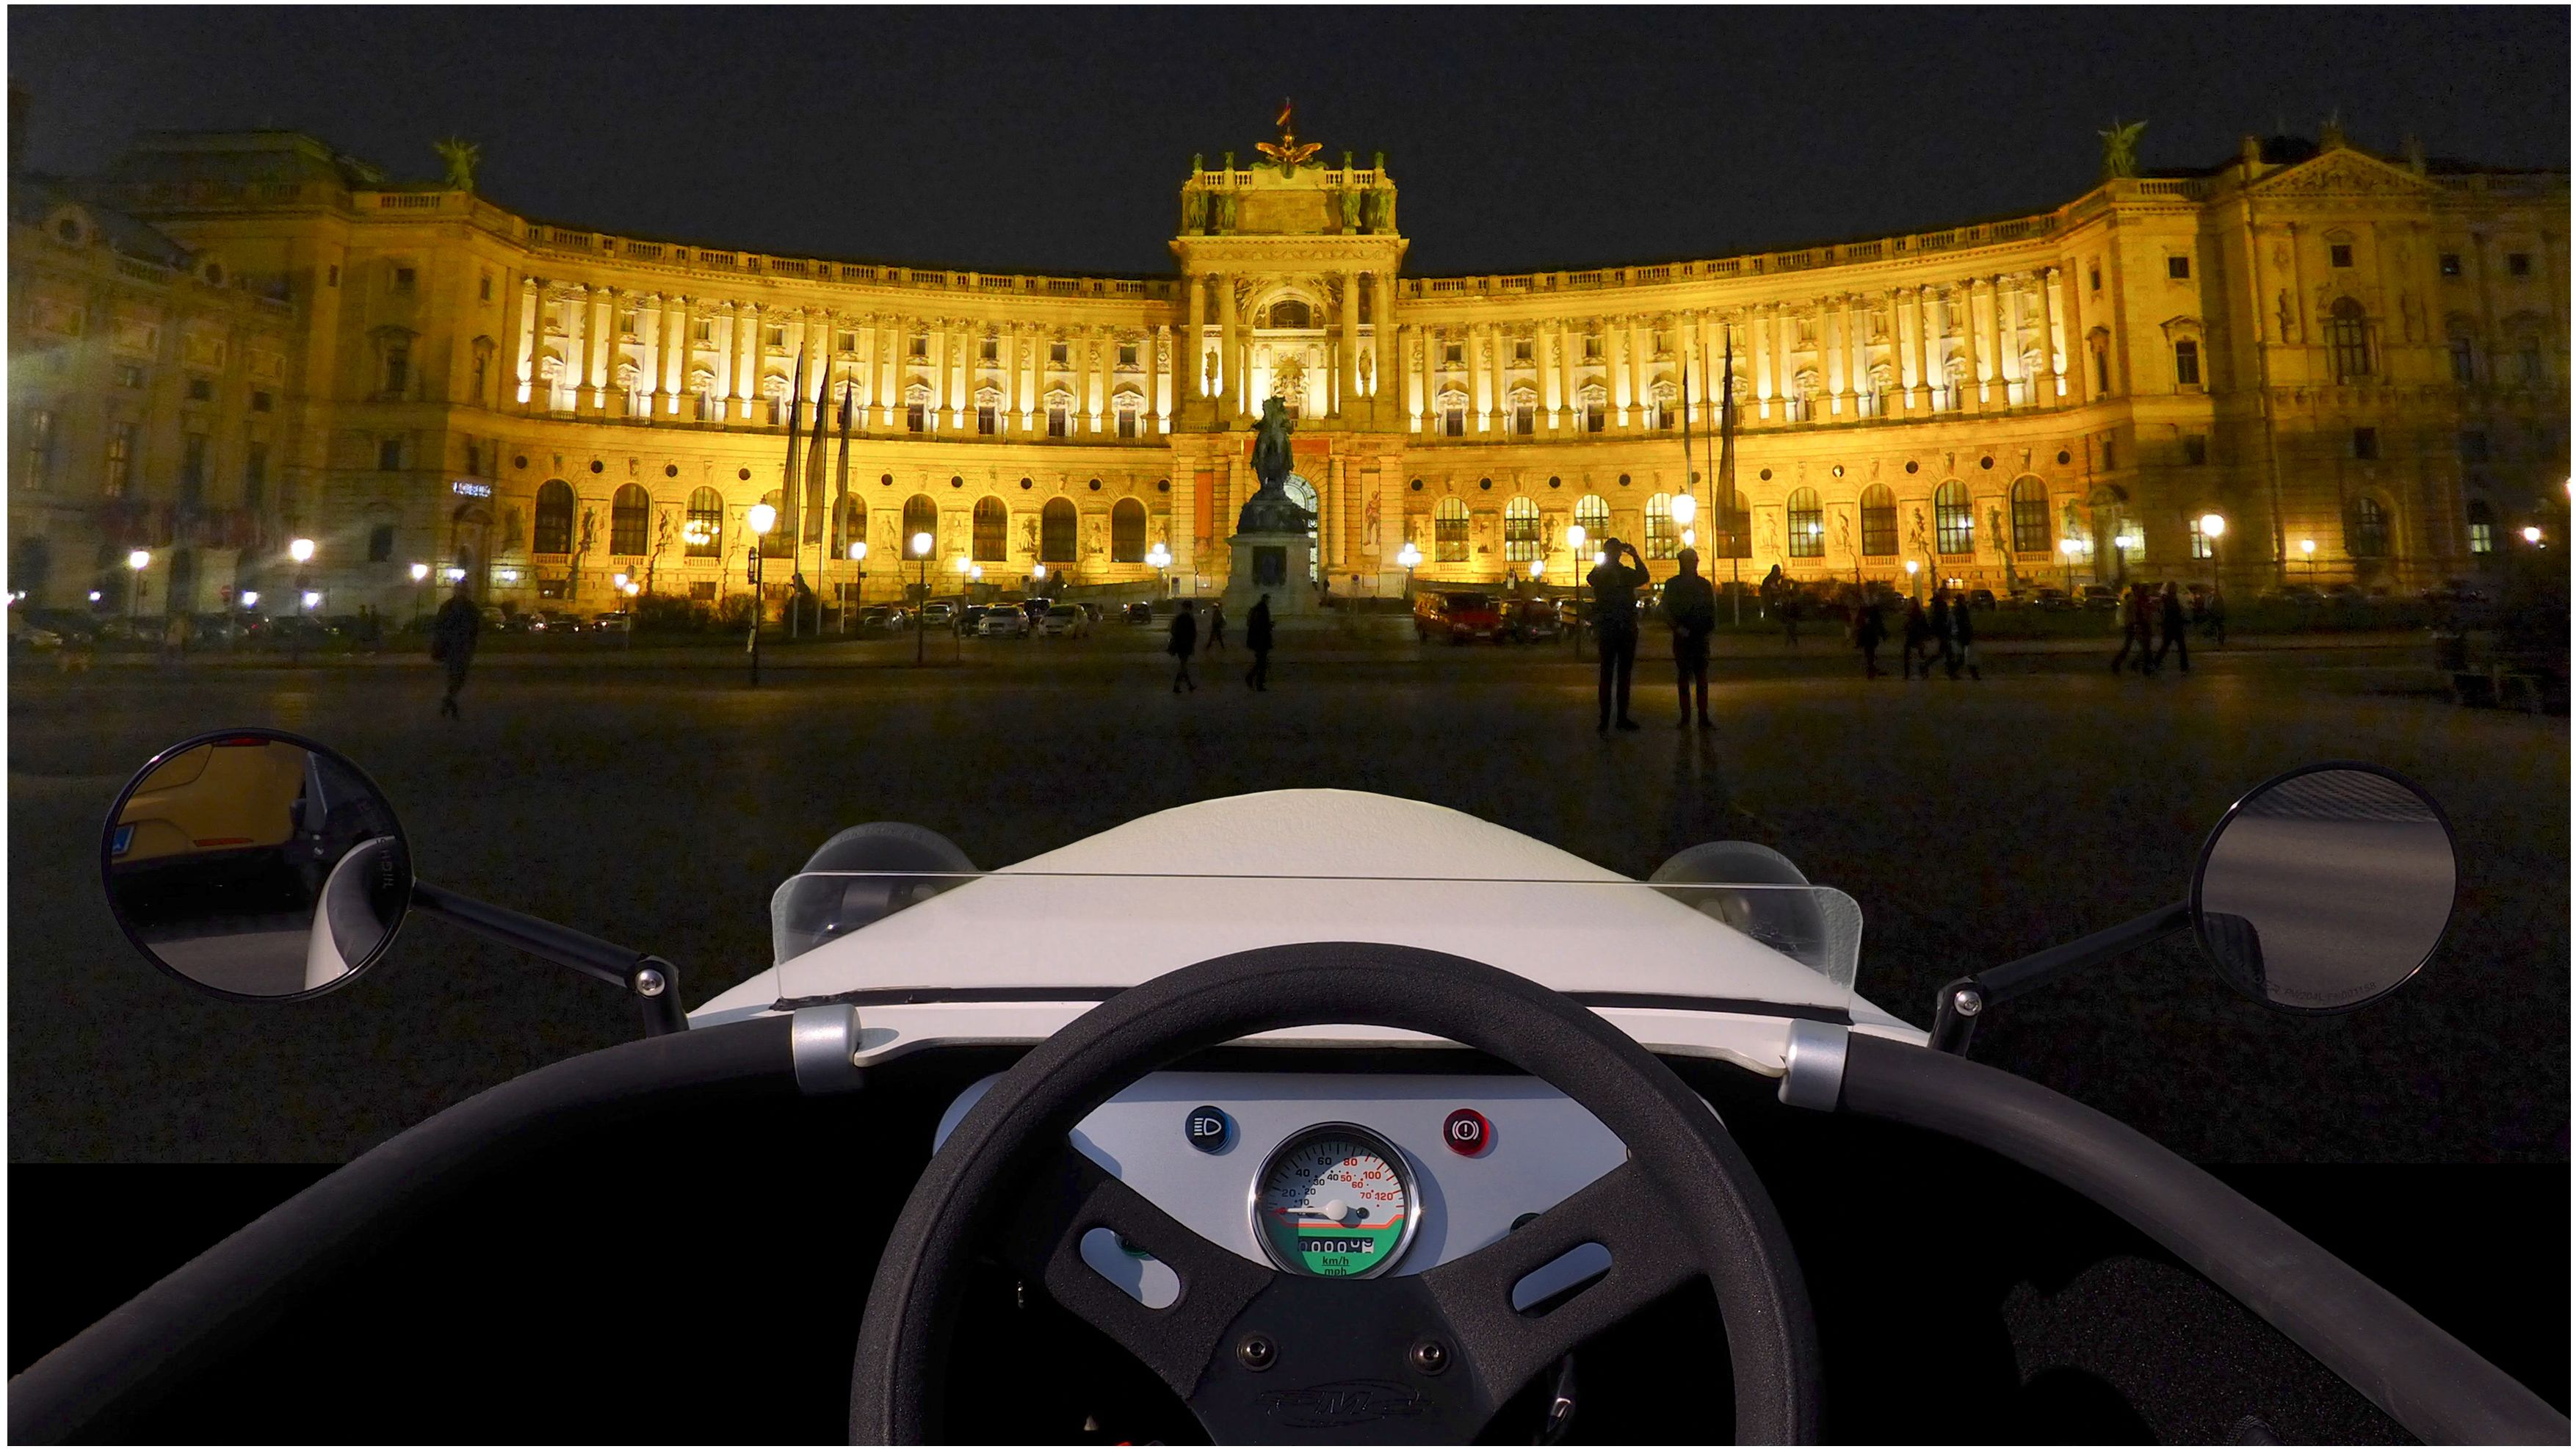 Hot Rod tour in Vienna at night